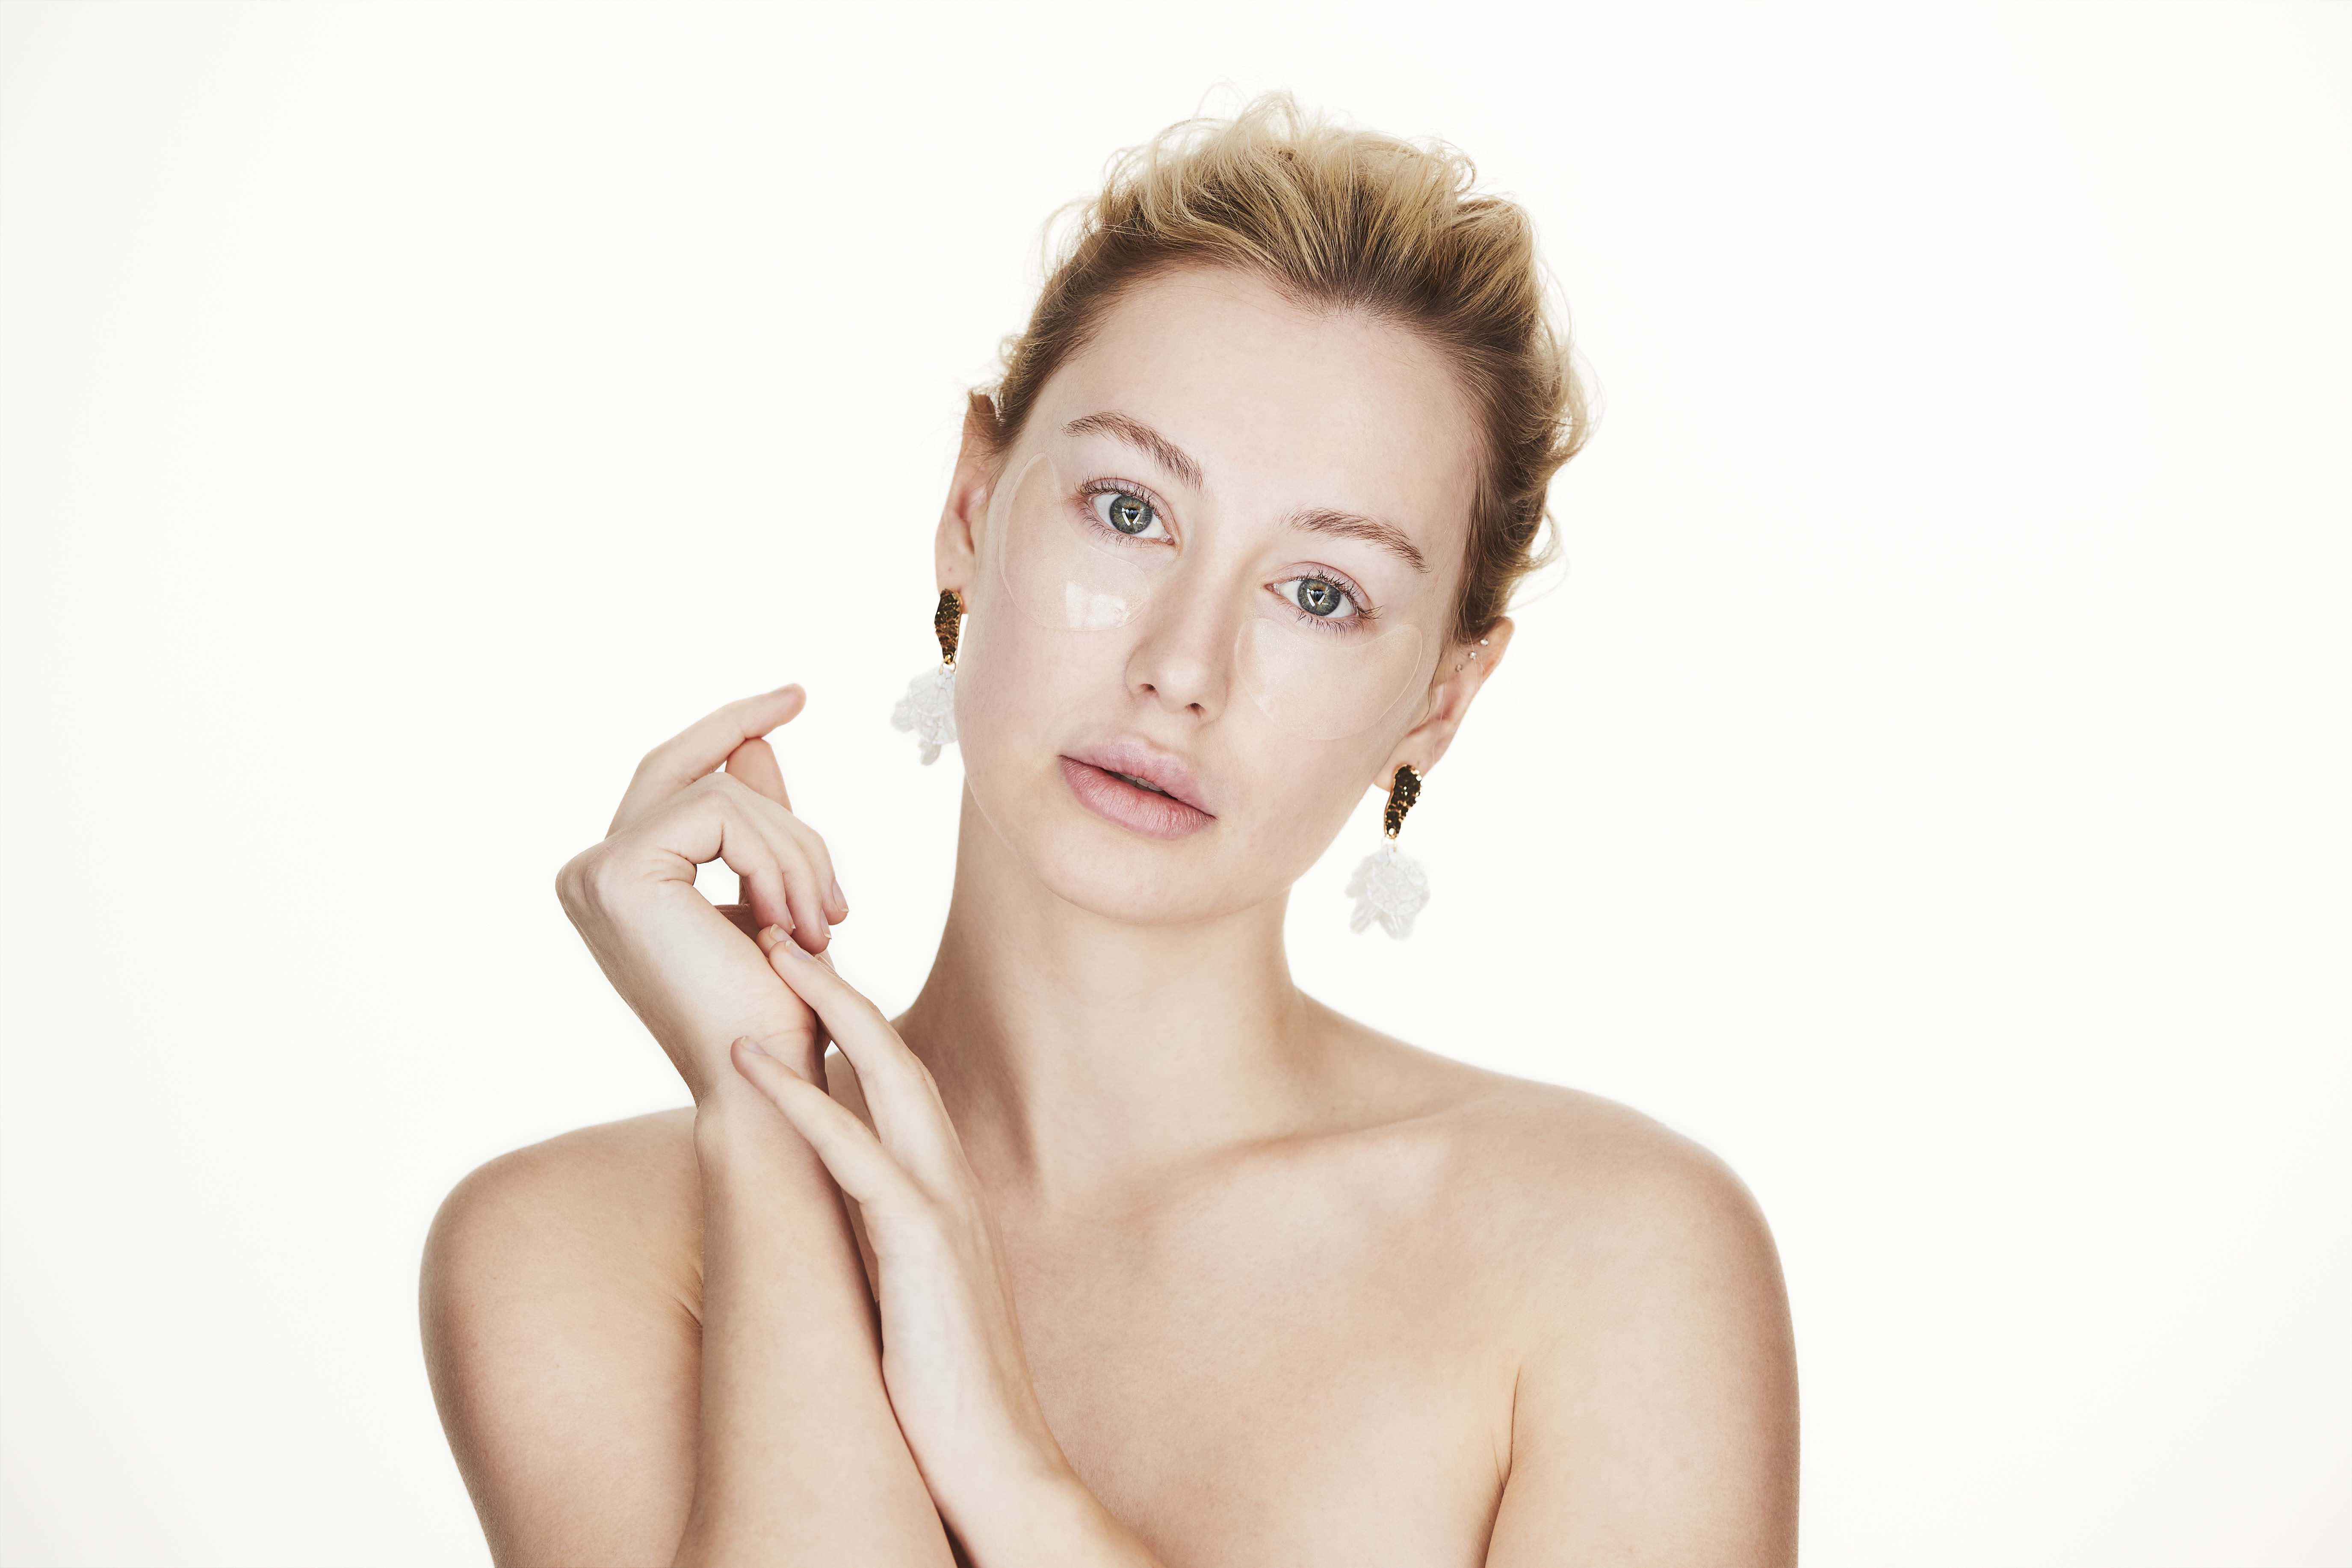 Learn makeup online - skincare tips